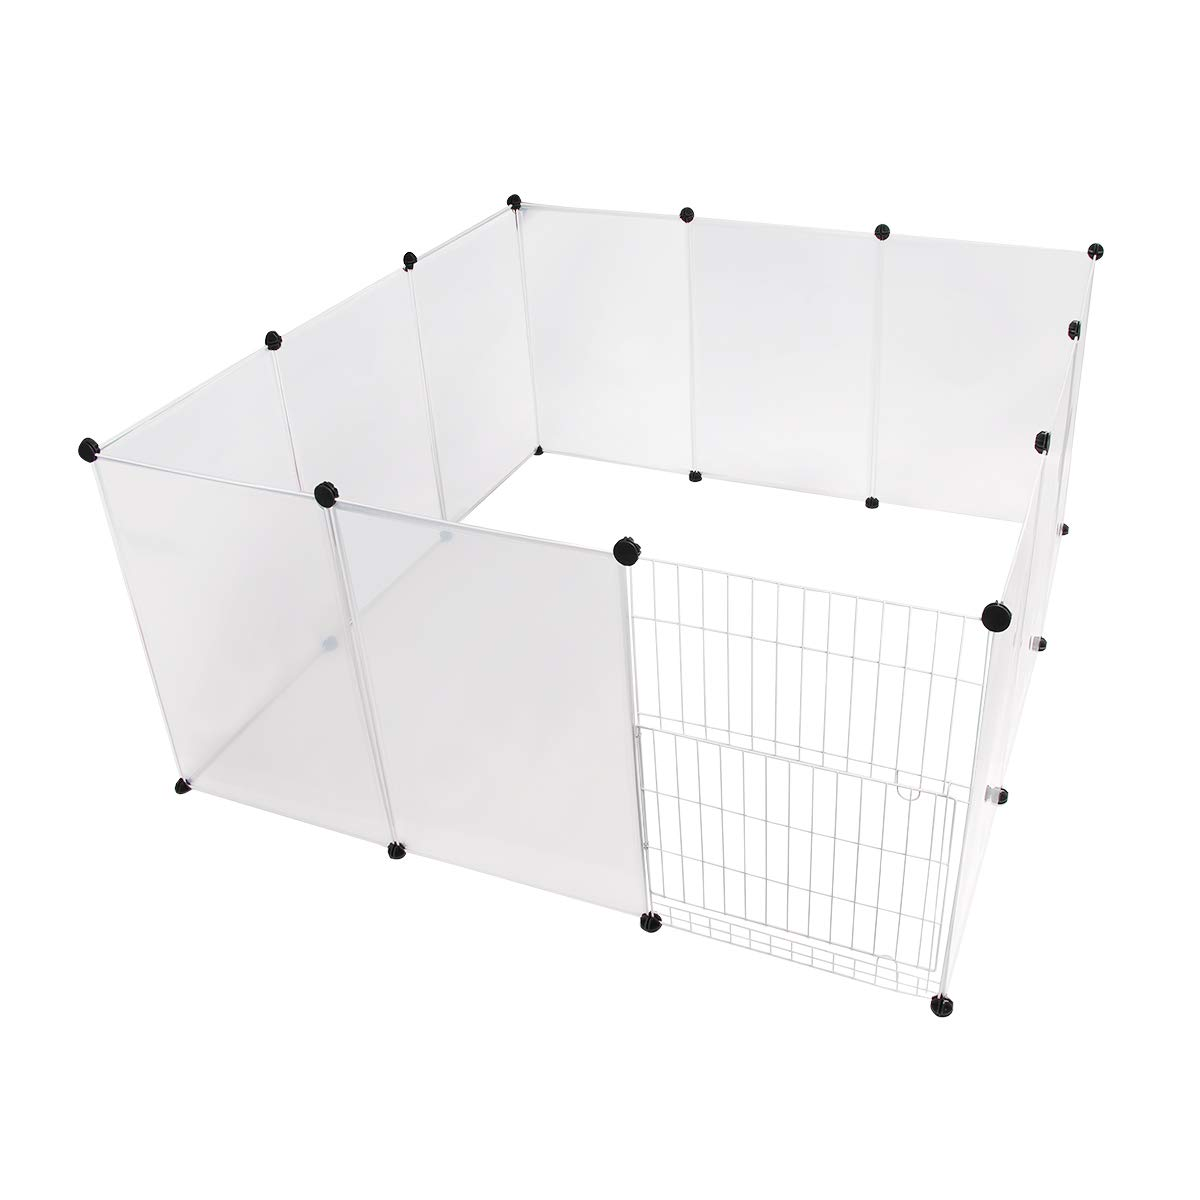 28\ LANGXUN Dog Playpen 12 Panels Indoor Outdoor Predable Puppy Exercise Pen Dog, Large Plastic Yard Fence for Small Animals, Pet Playpens for Dogs, Kitten, Rabbit, Guinea Pig, Ferret